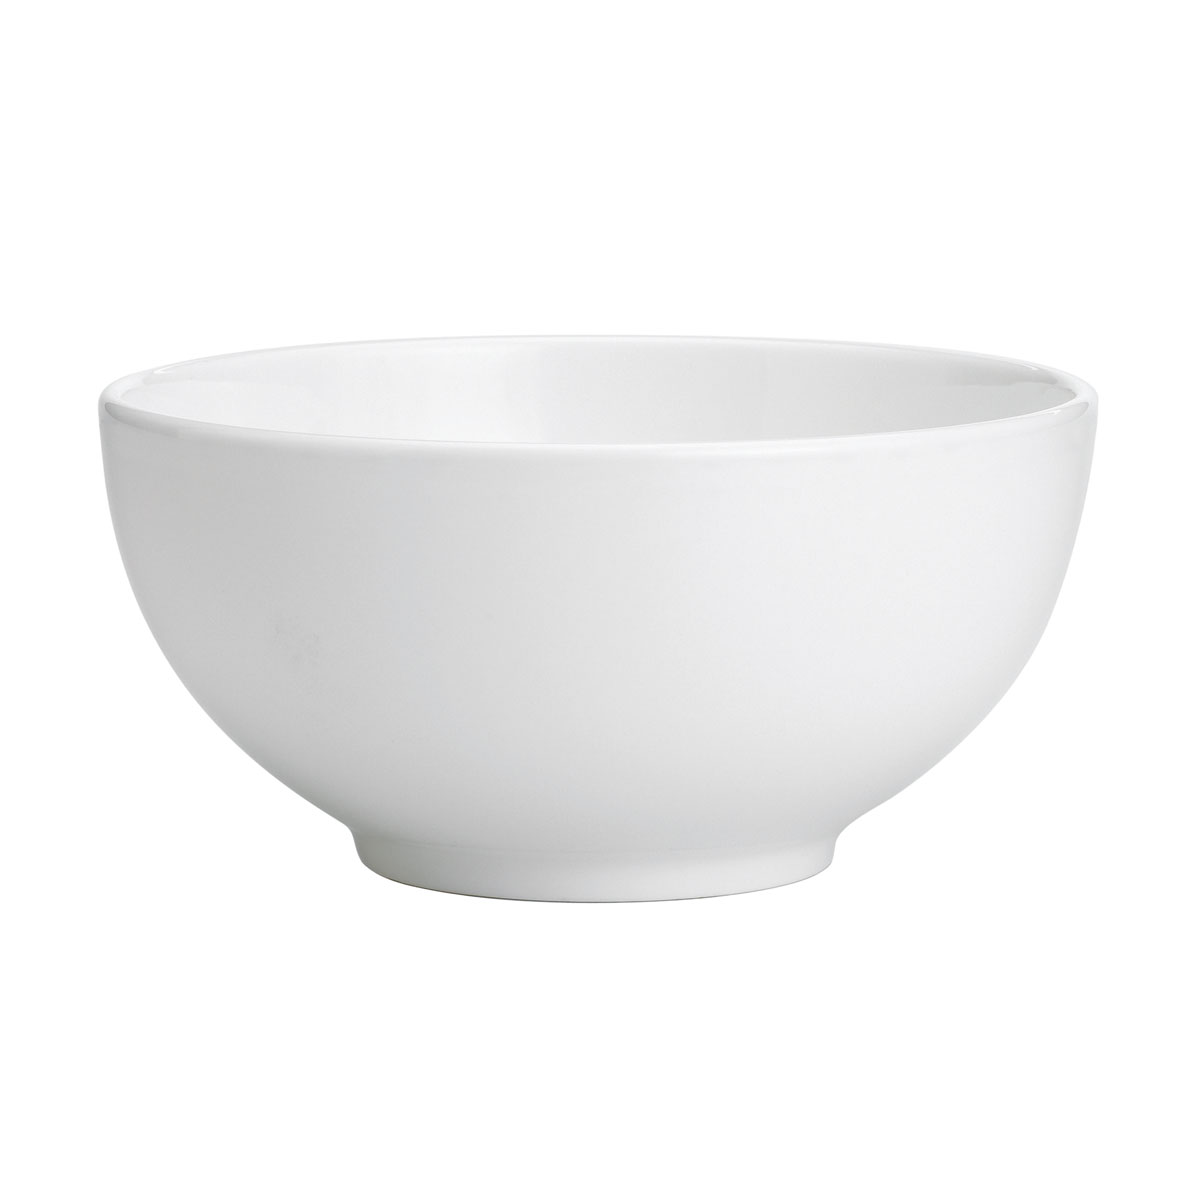 Wedgwood Wedgwood White All Purpose Bowl, single